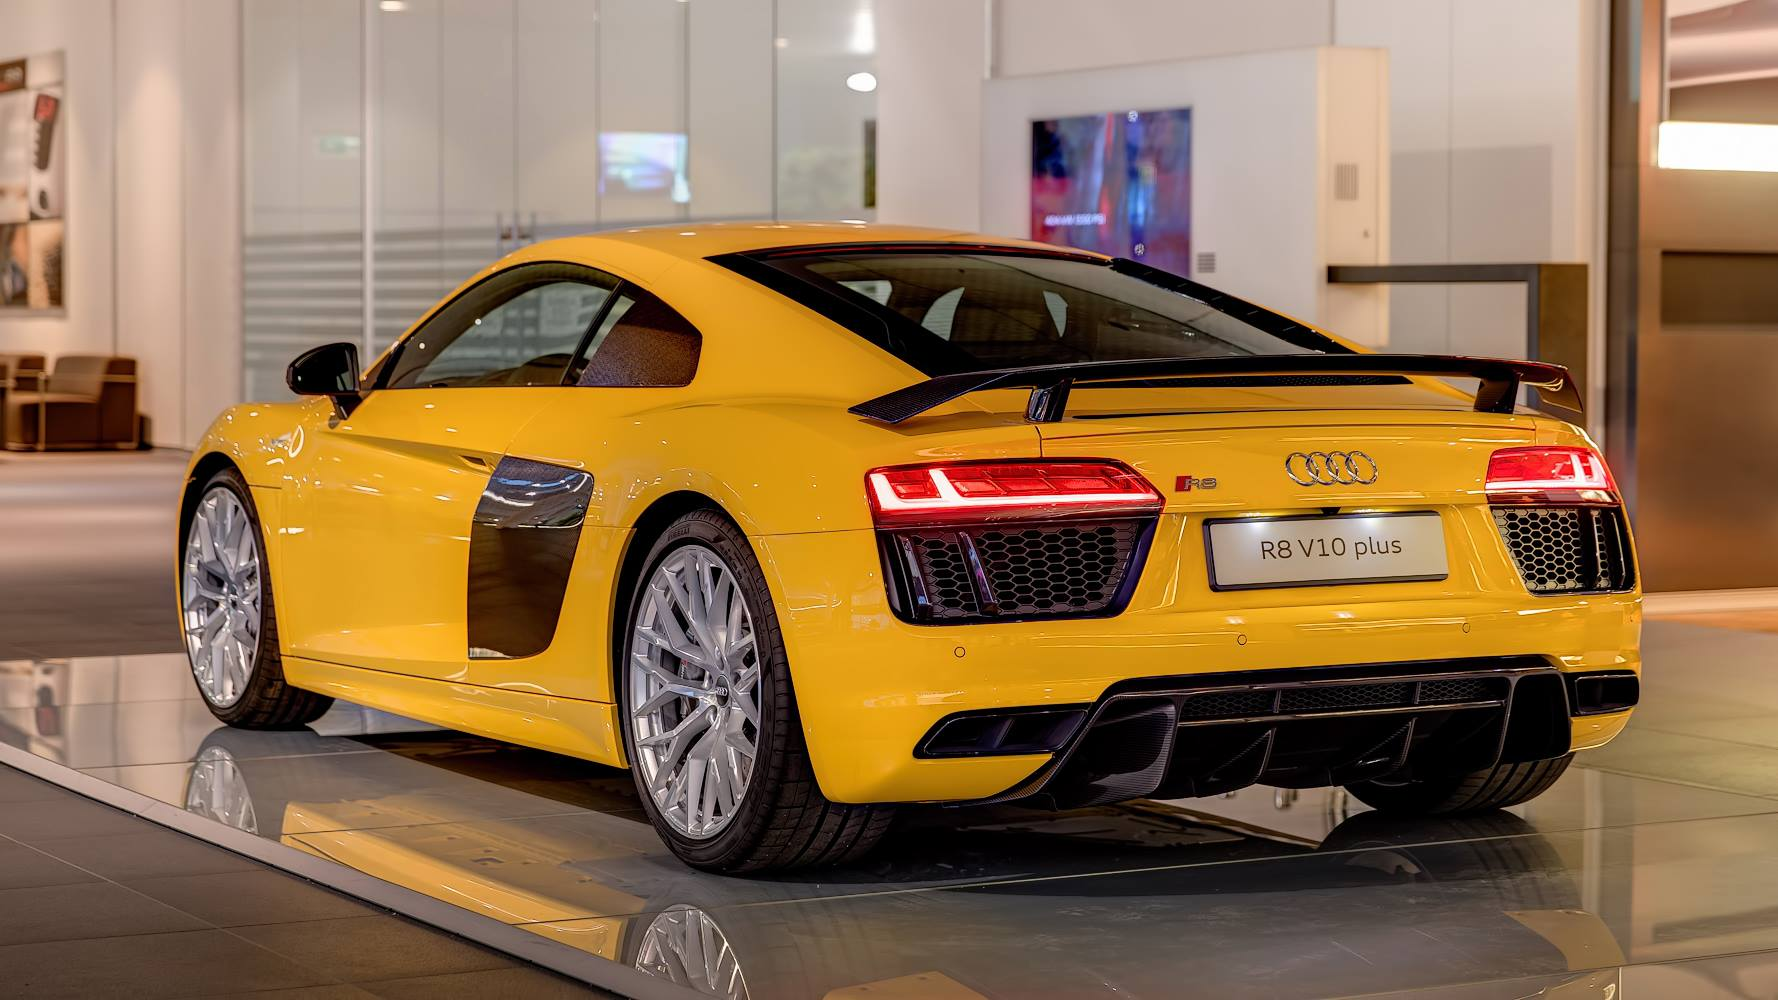 vegas yellow 2016 audi r8 v10 plus arrives at audi forum neckarsulm autoevolution. Black Bedroom Furniture Sets. Home Design Ideas